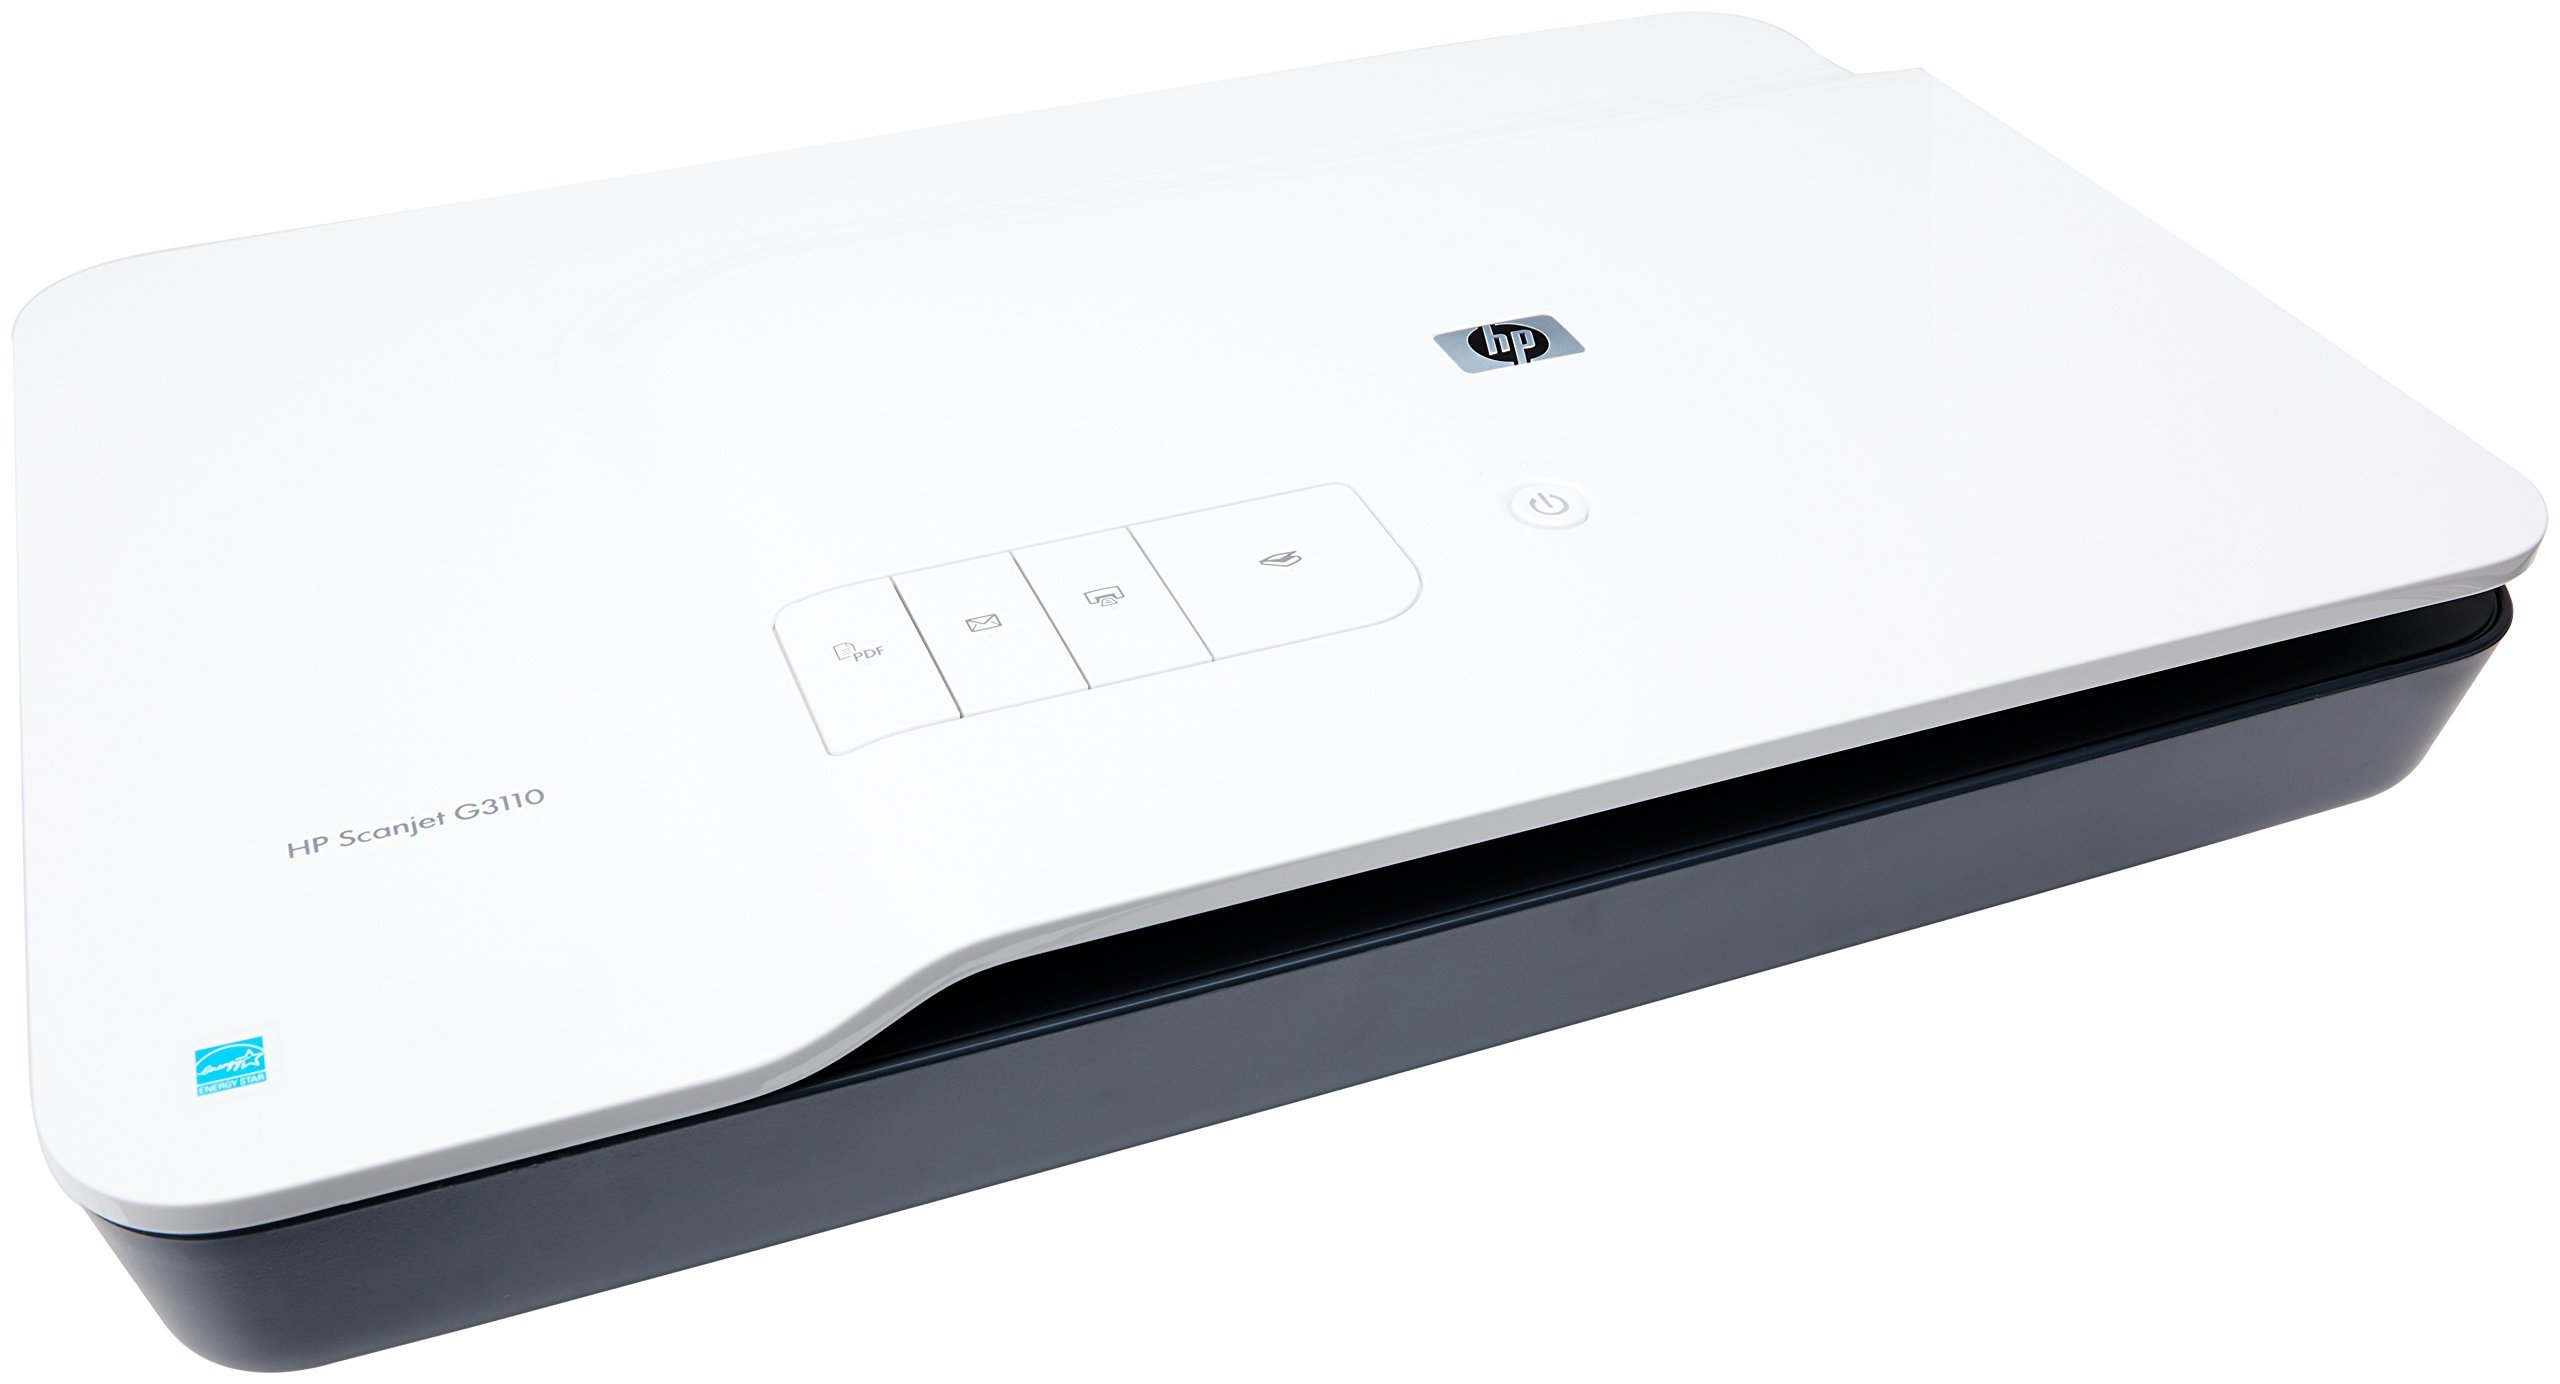 HP ScanJet G3110 Photo Scanner - Scanner à plat - 220 x 300 mm - 4800 ppp x 9600 ppp - Hi-Speed USB (Renewed) by HP